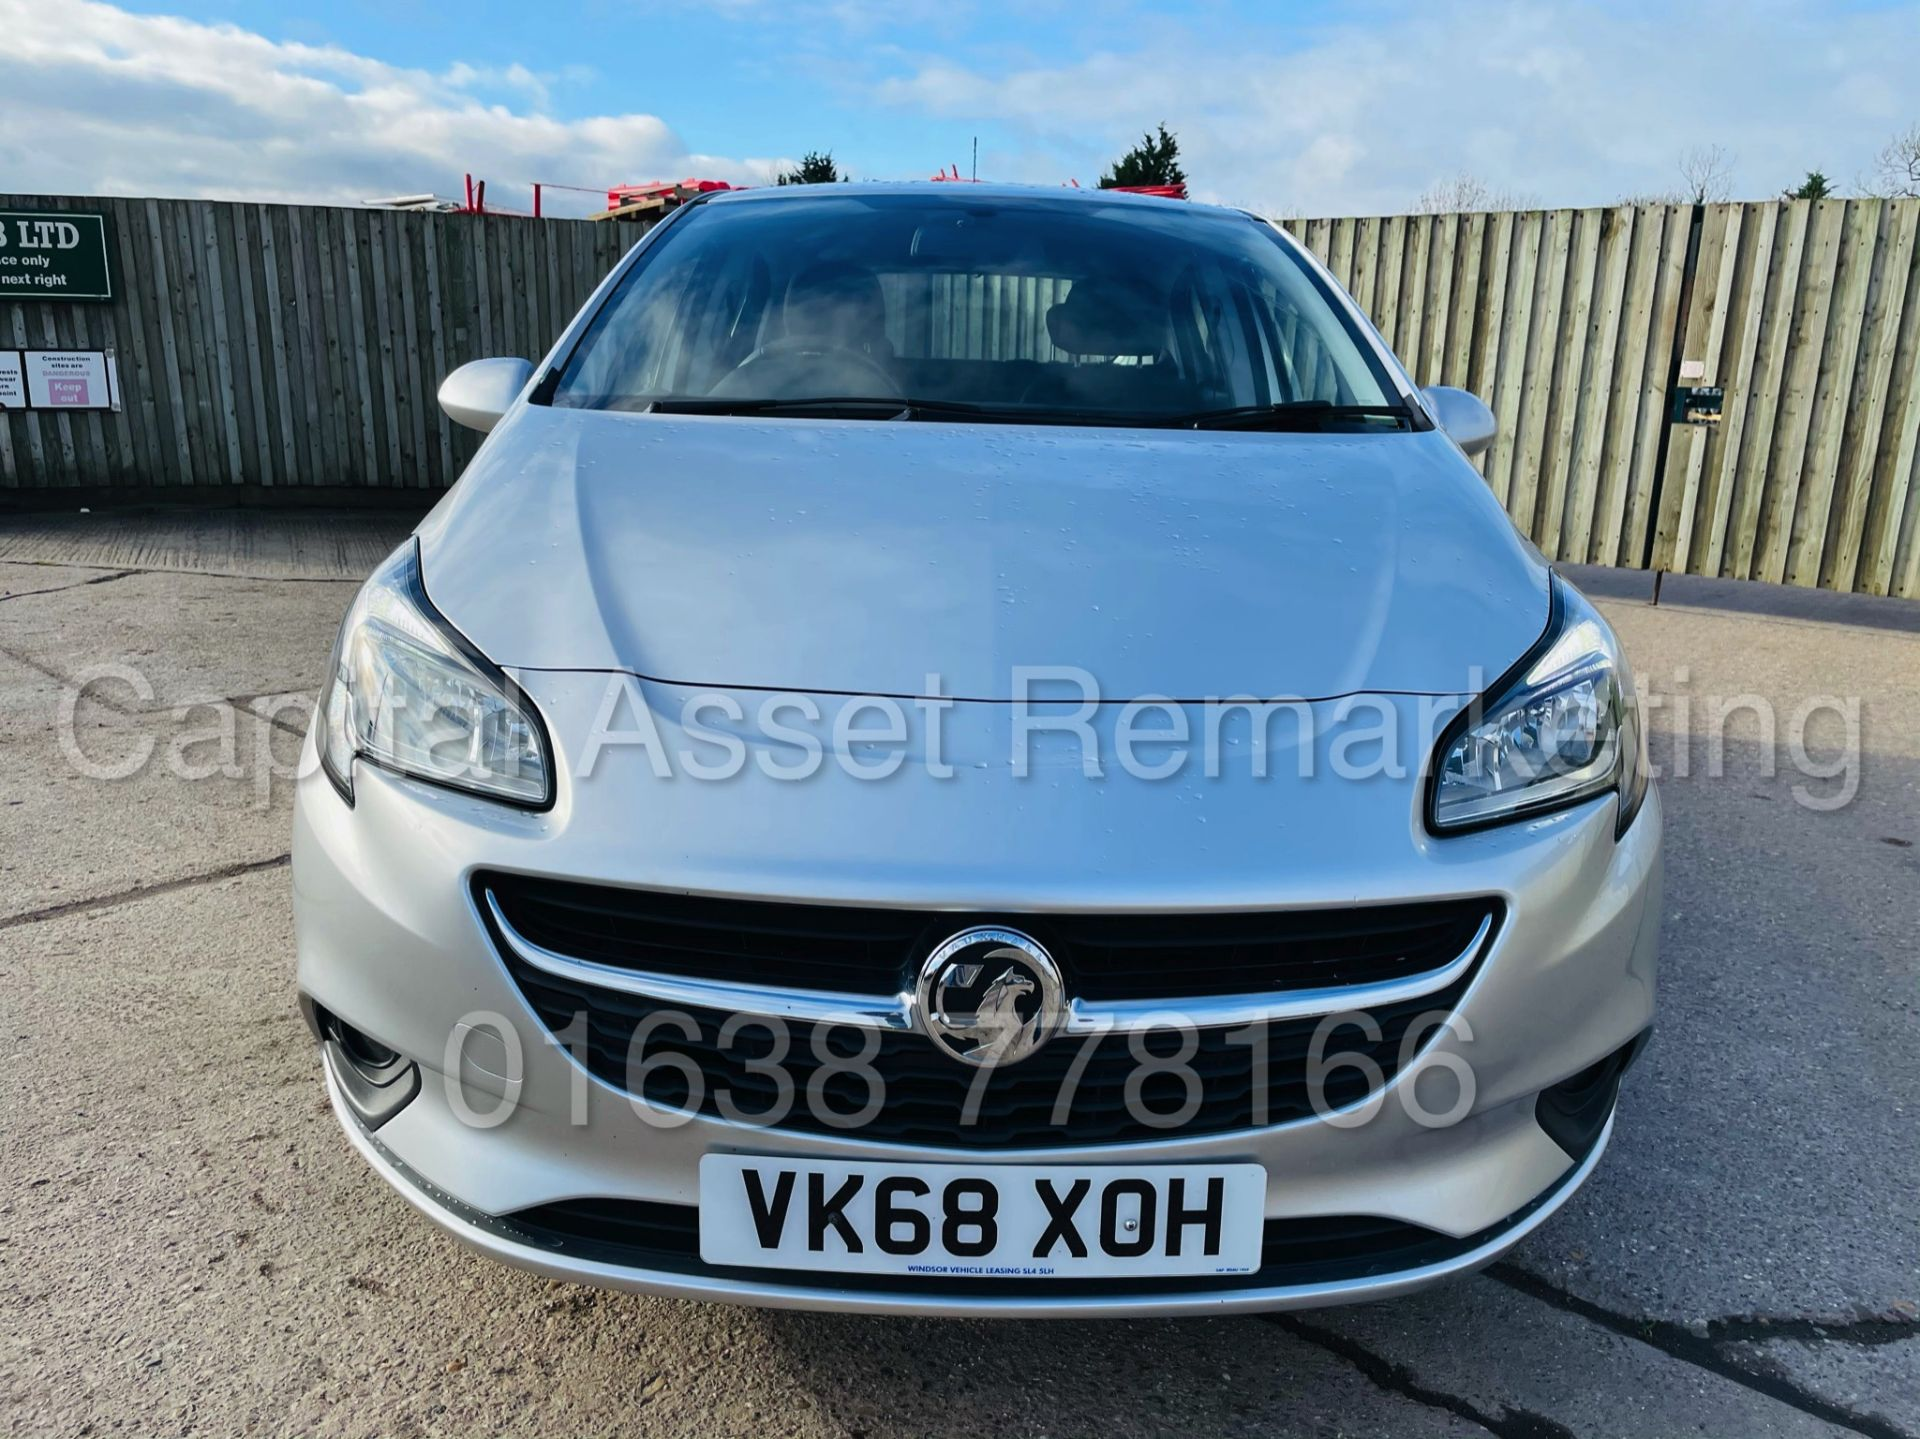 On Sale VAUXHALL CORSA *DESIGN EDITION* 5 DOOR HATCHBACK (2019 - NEW MODEL) 1.4 PETROL - (1 OWNER) - Image 4 of 42